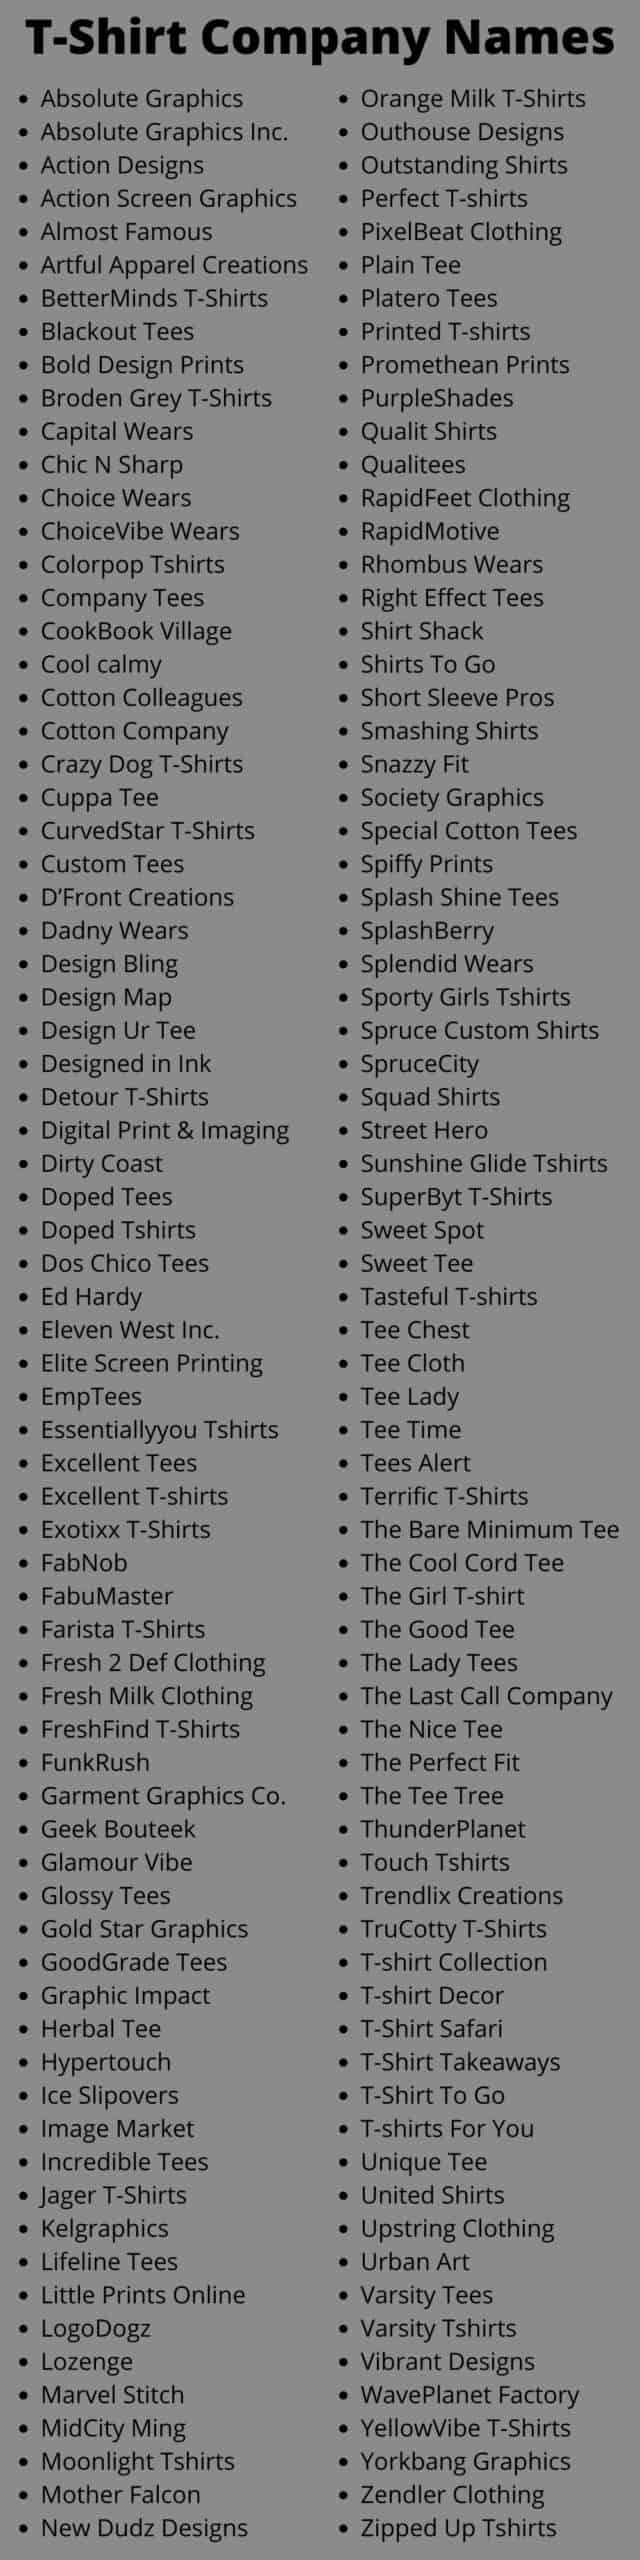 T-Shirt Company Names